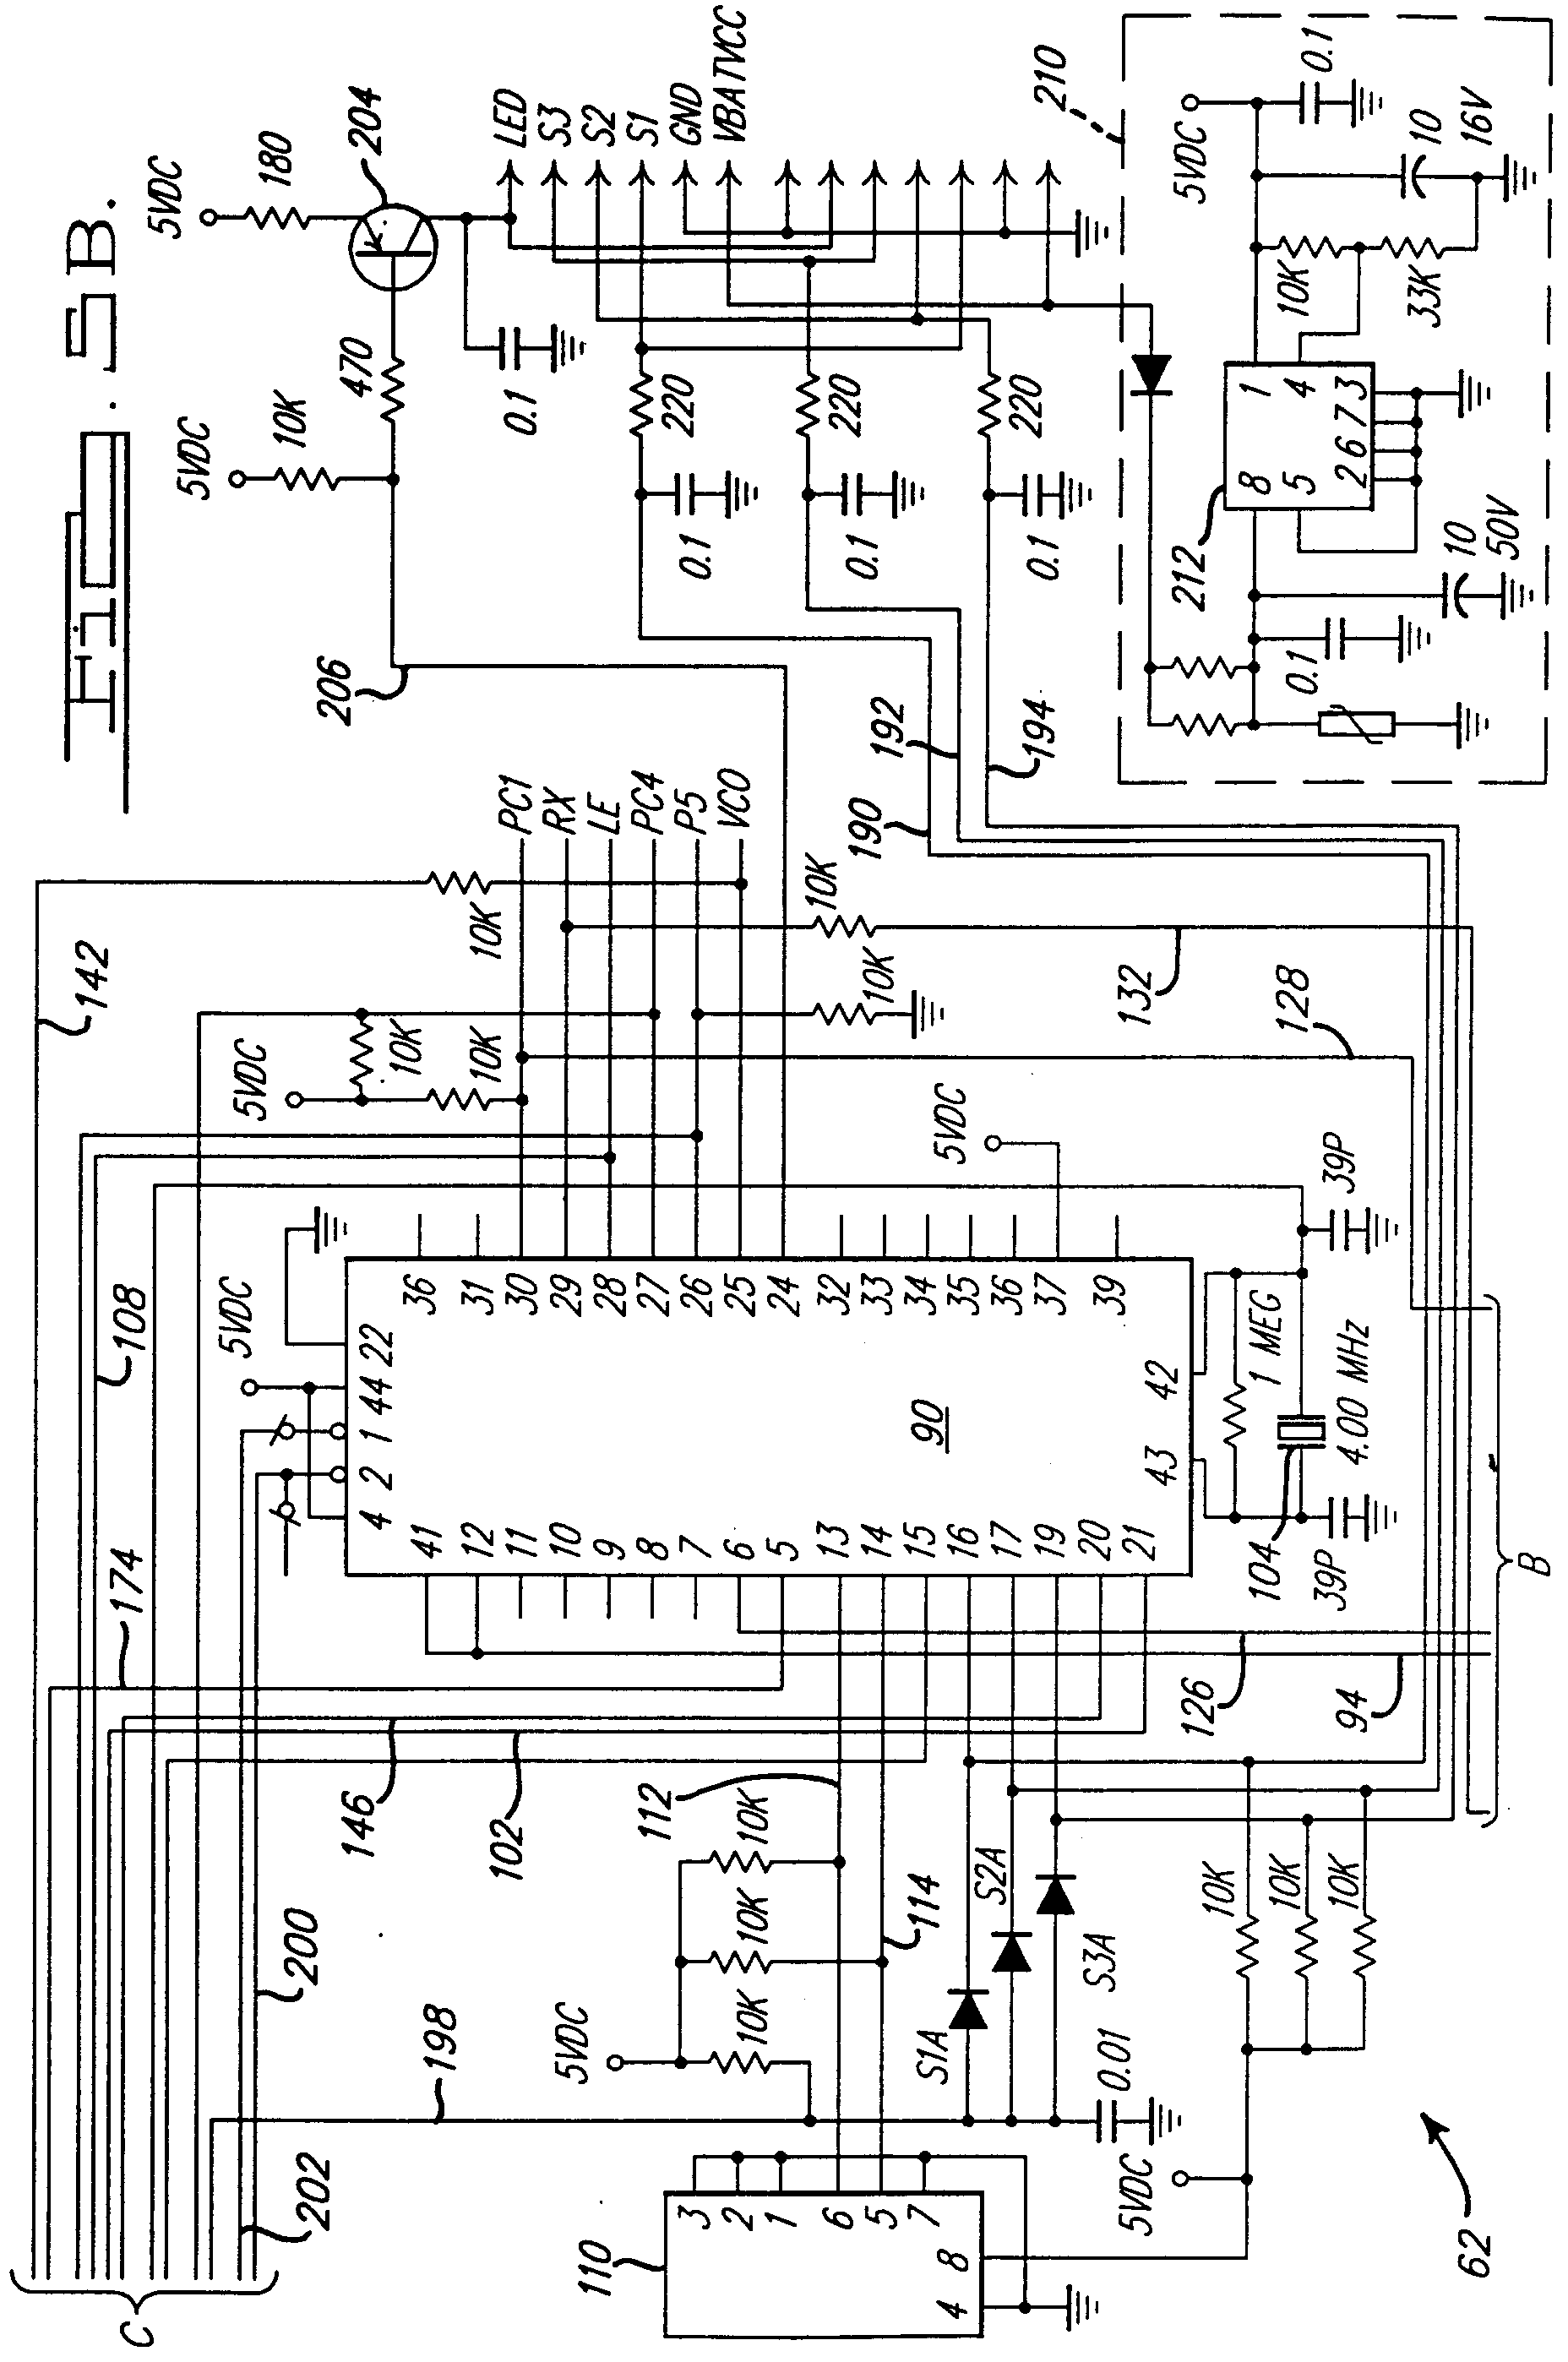 00350001 patent ep0875646a1 universal garage door opener google patents garage door opener wiring schematic at bayanpartner.co